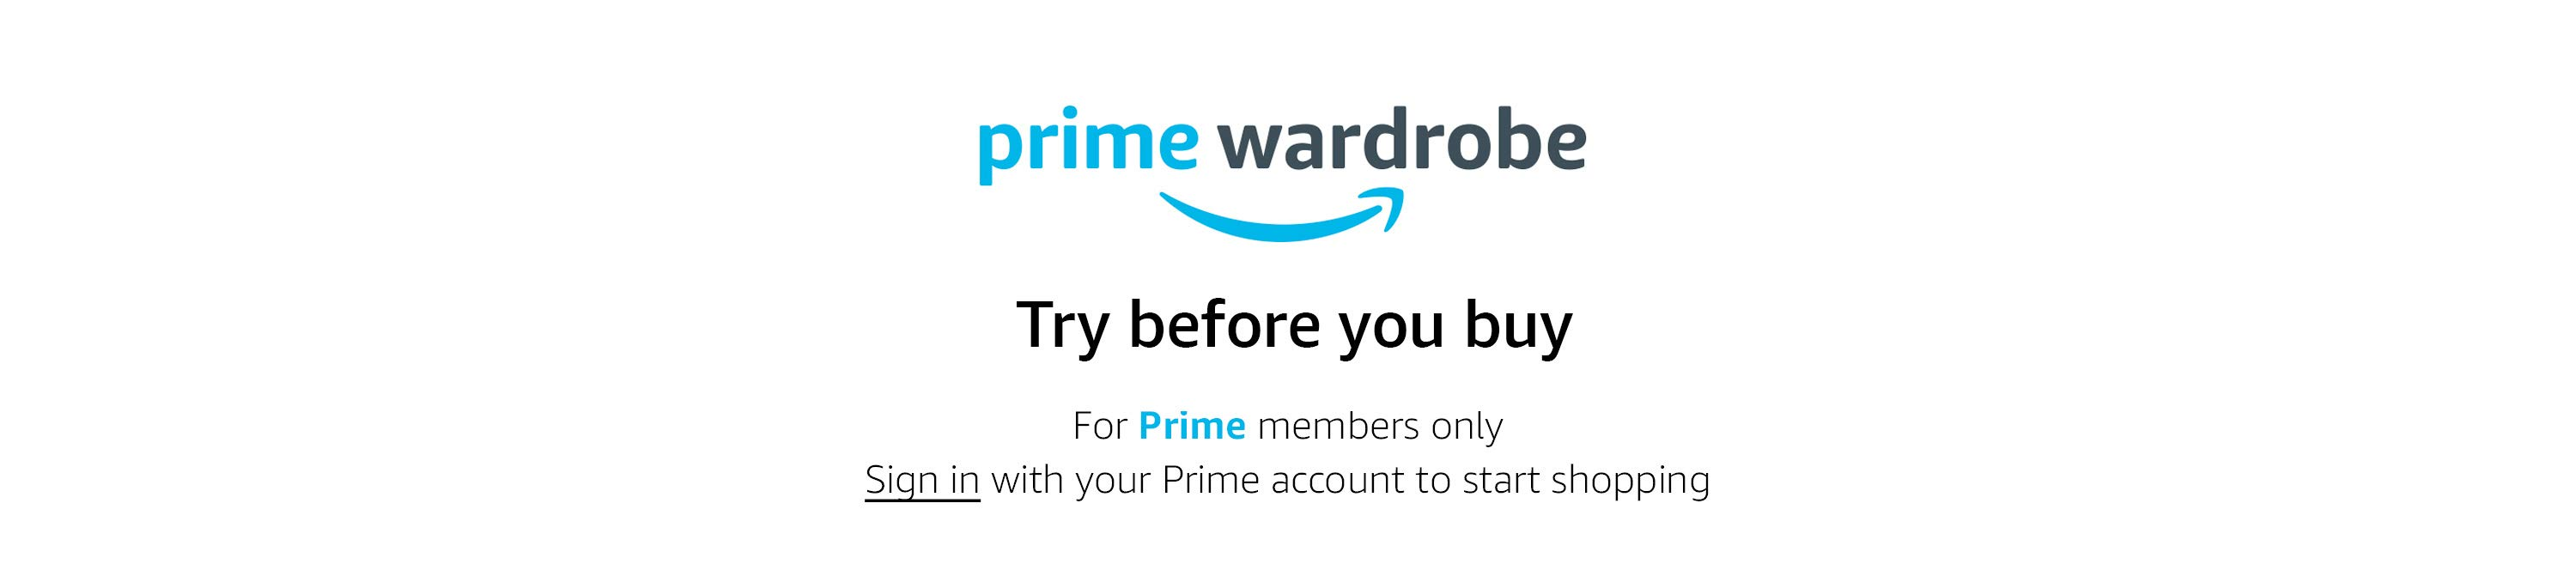 Introducing Prime Wardrobe: try before you buy